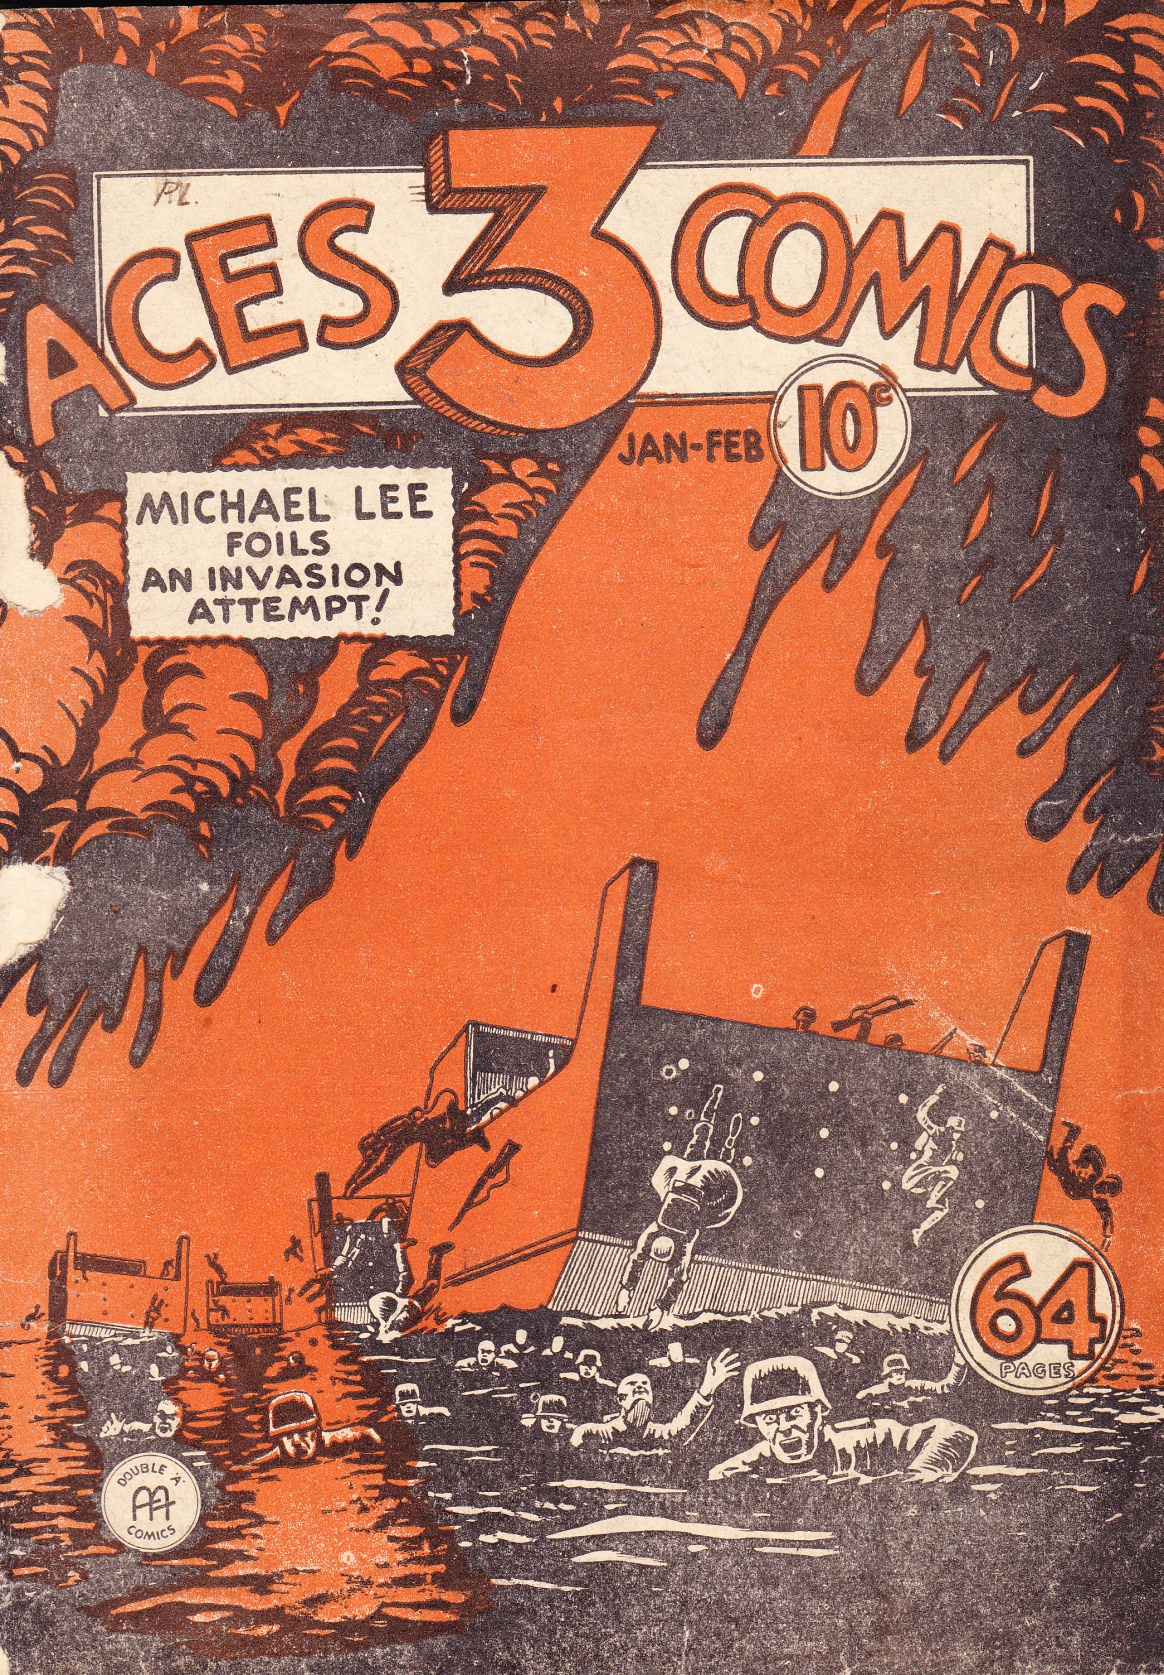 C:\Users\Robert\Documents\CARTOONING ILLUSTRATION ANIMATION\IMAGE COVER COMIC BOOK\THREE ACES, 1-8, Sept 1942, fc.jpg